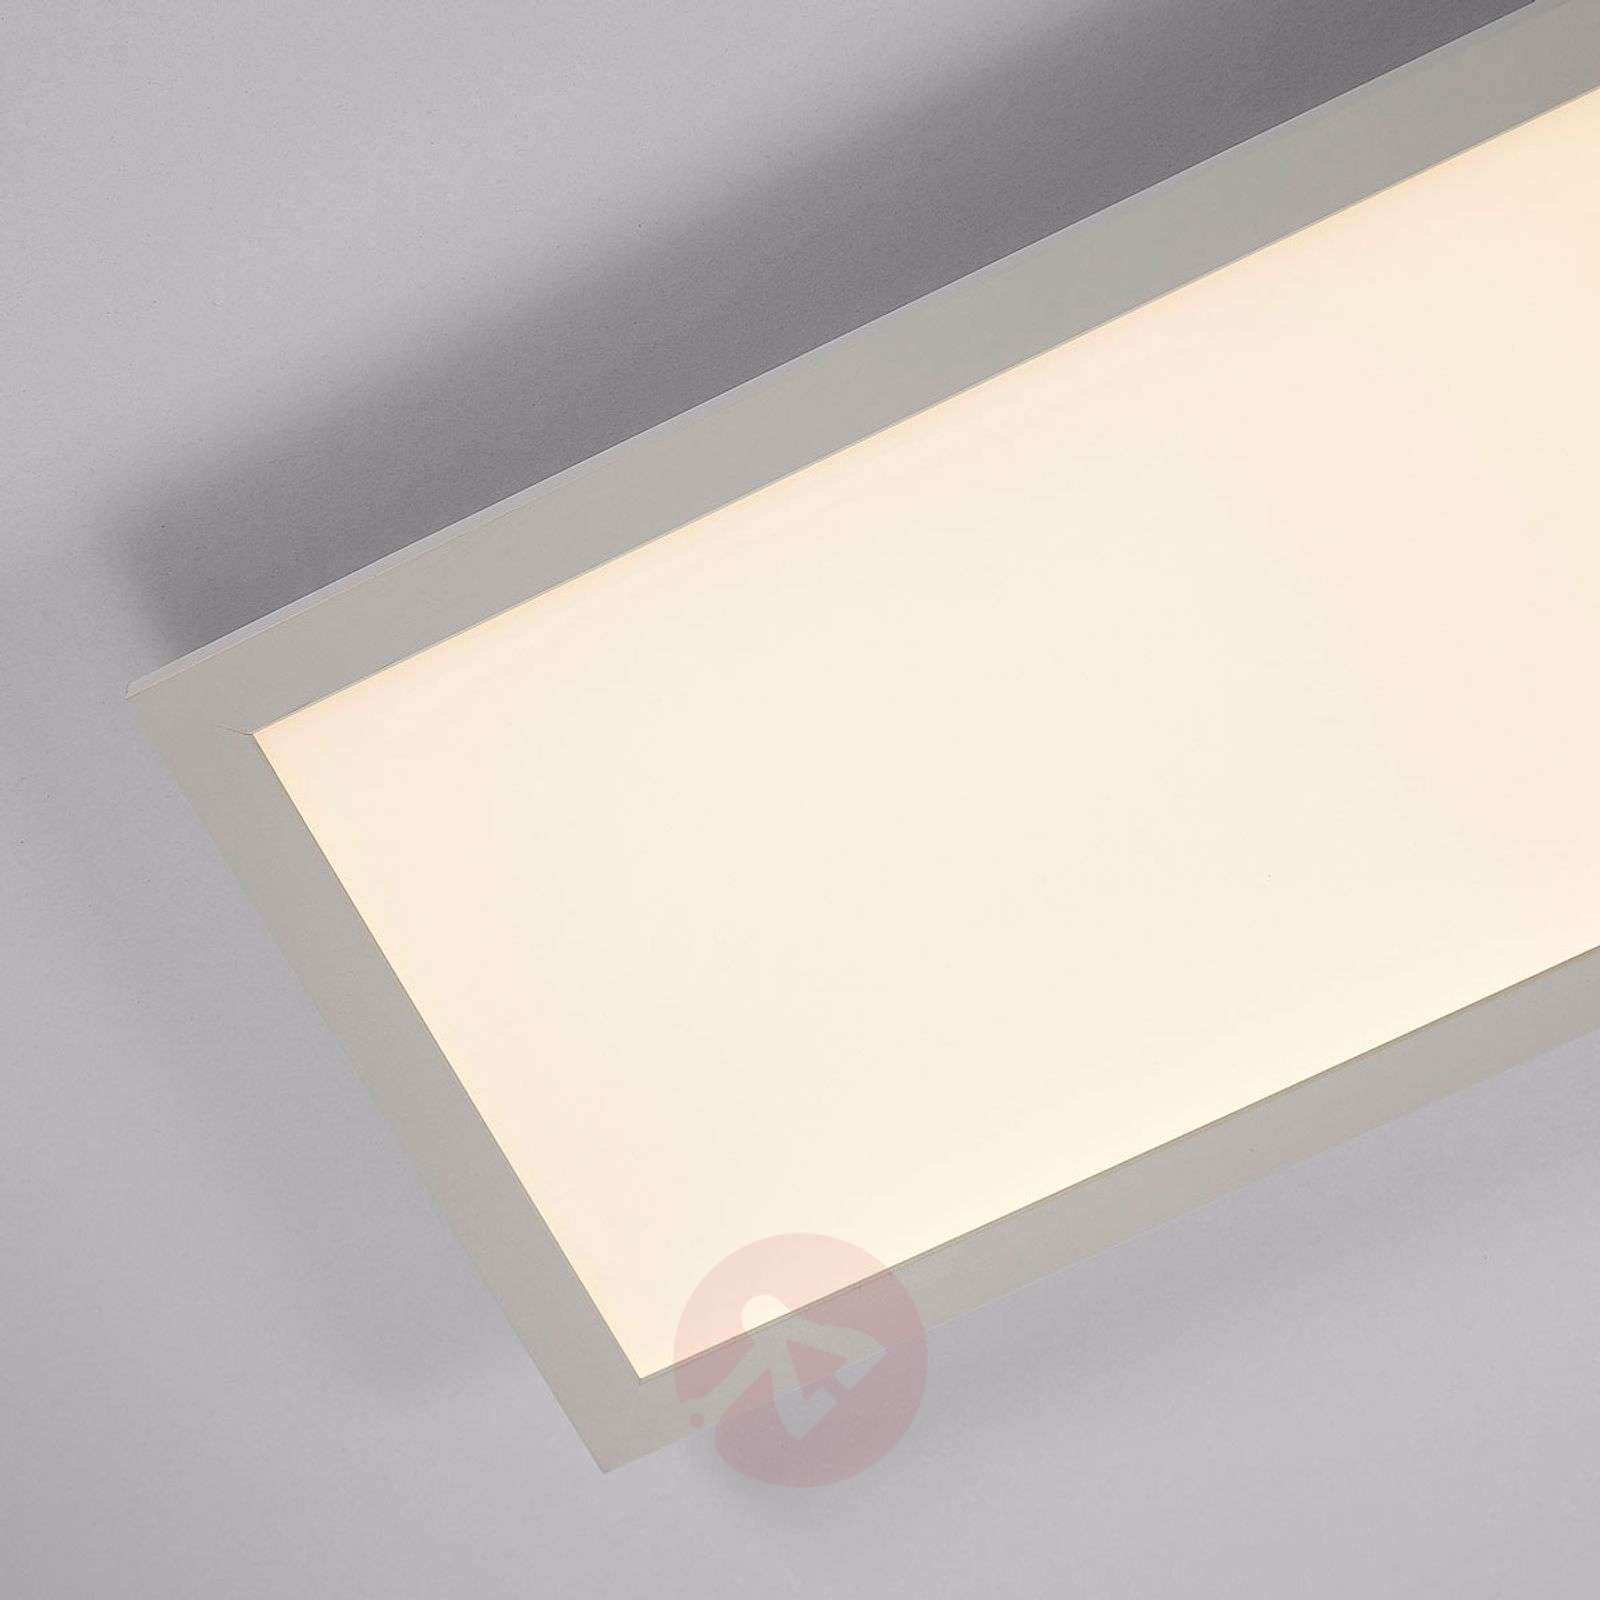 Rectangular LED panel Enja, 120 x 30 cm-9621533-011